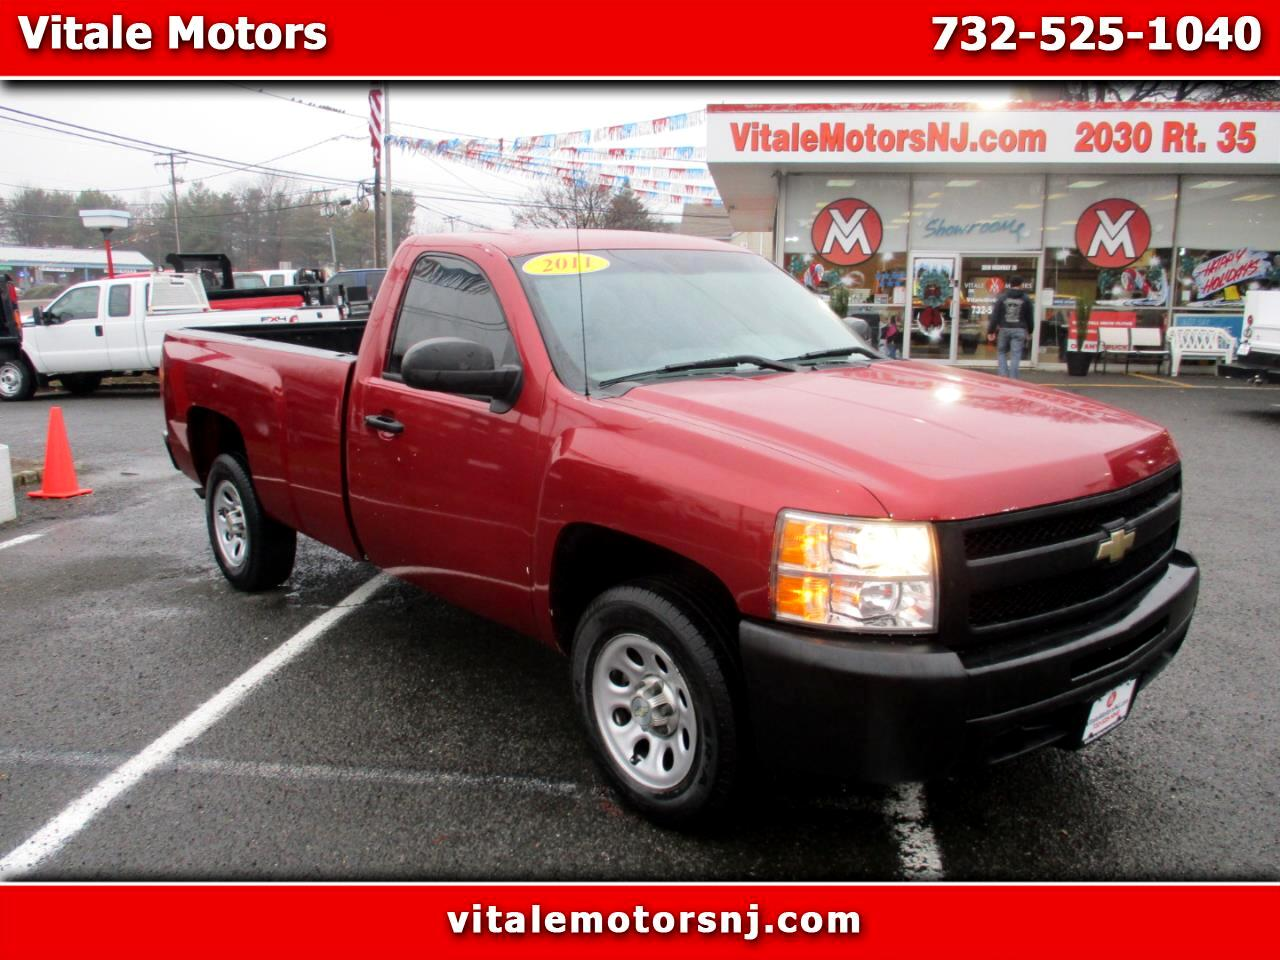 2011 Chevrolet Silverado 1500 REG CAB LONG BED